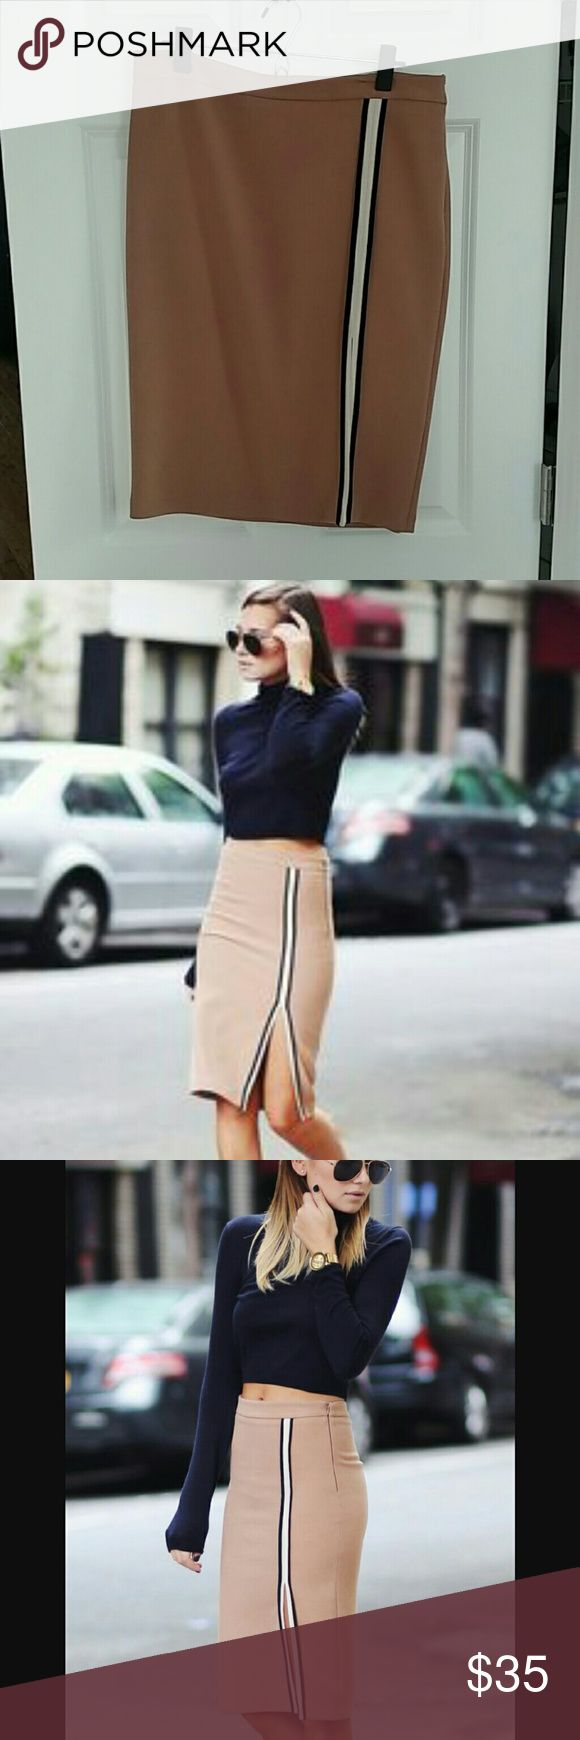 Zara Side Slit Skirt So cute and only worn once. Seen on Danielle Bernstein of We Wore What. Looks great for work or play with white sneakers. Zara Skirts Midi